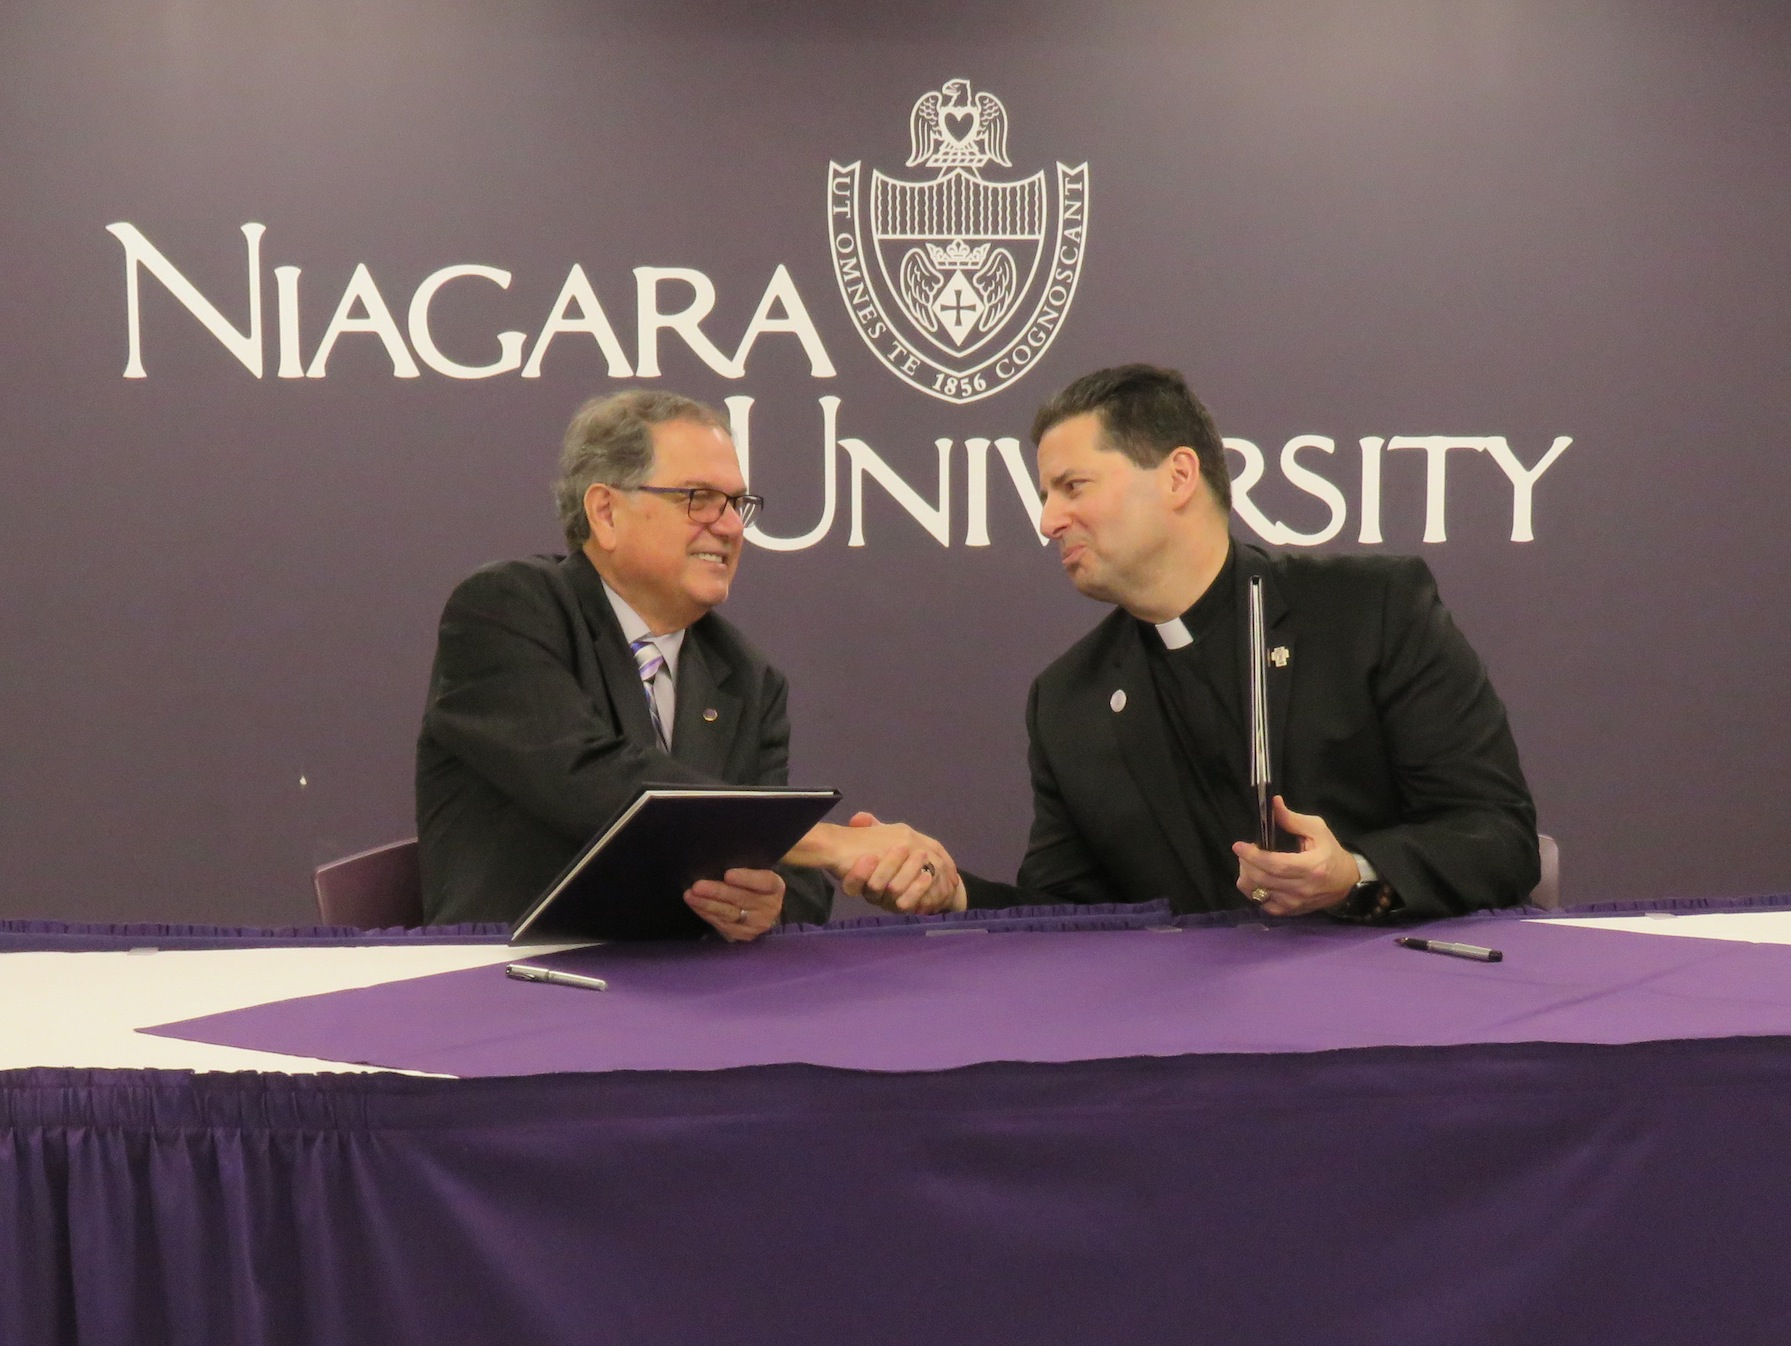 From left, Niagara County Community College President Dr. William Murabito and Niagara University President Rev. James J. Maher C.M. shake hands following a memorandum of understanding. (Photo by David Yarger)